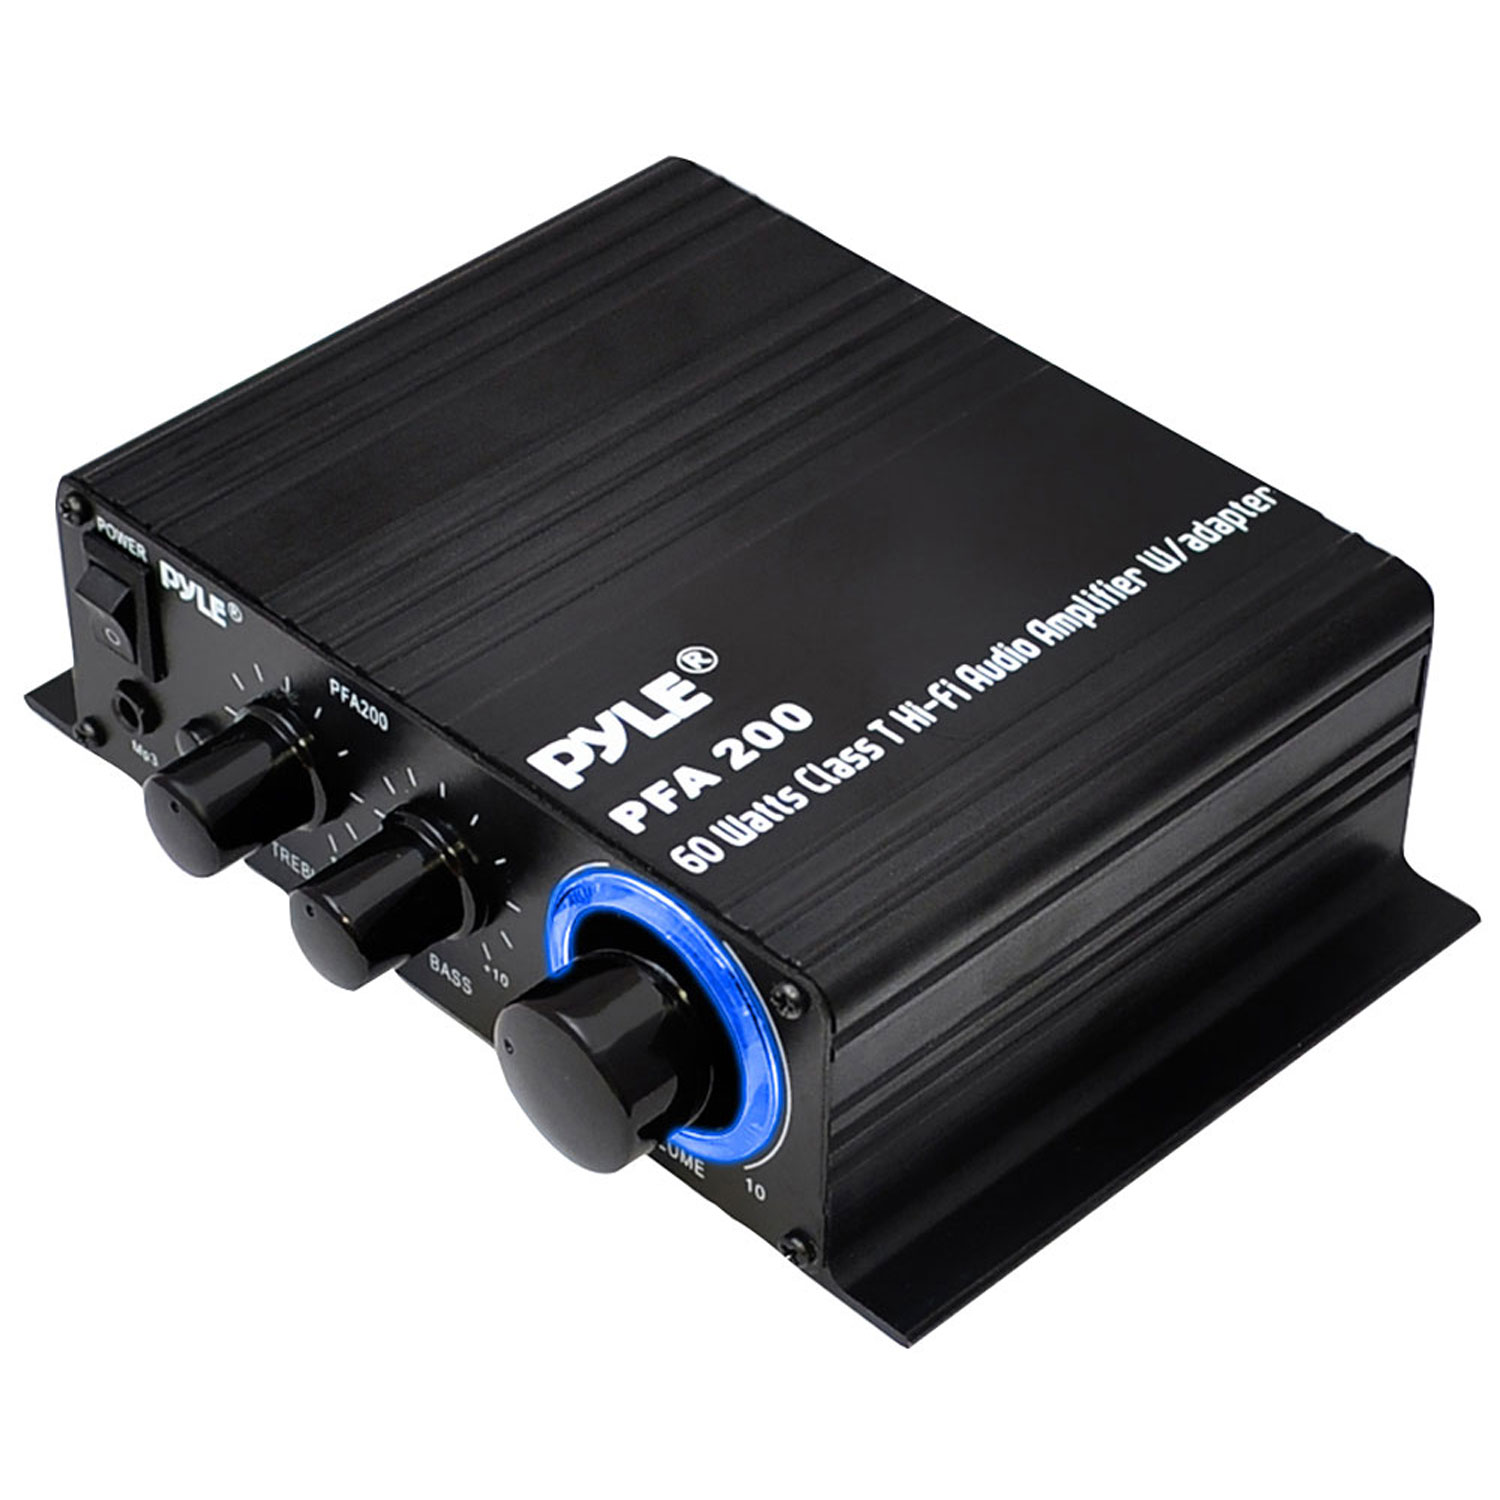 Pyle Home Mini Audio Amplifier - 60W Portable Dual Channel Surround Sound HiFi Stereo Receiver w/ 12V AC Adapter, AUX, MIC IN, Supports Smart Phone, iPhone, iPod, MP3 For 2-8ohm Speakers - Pyle PFA200